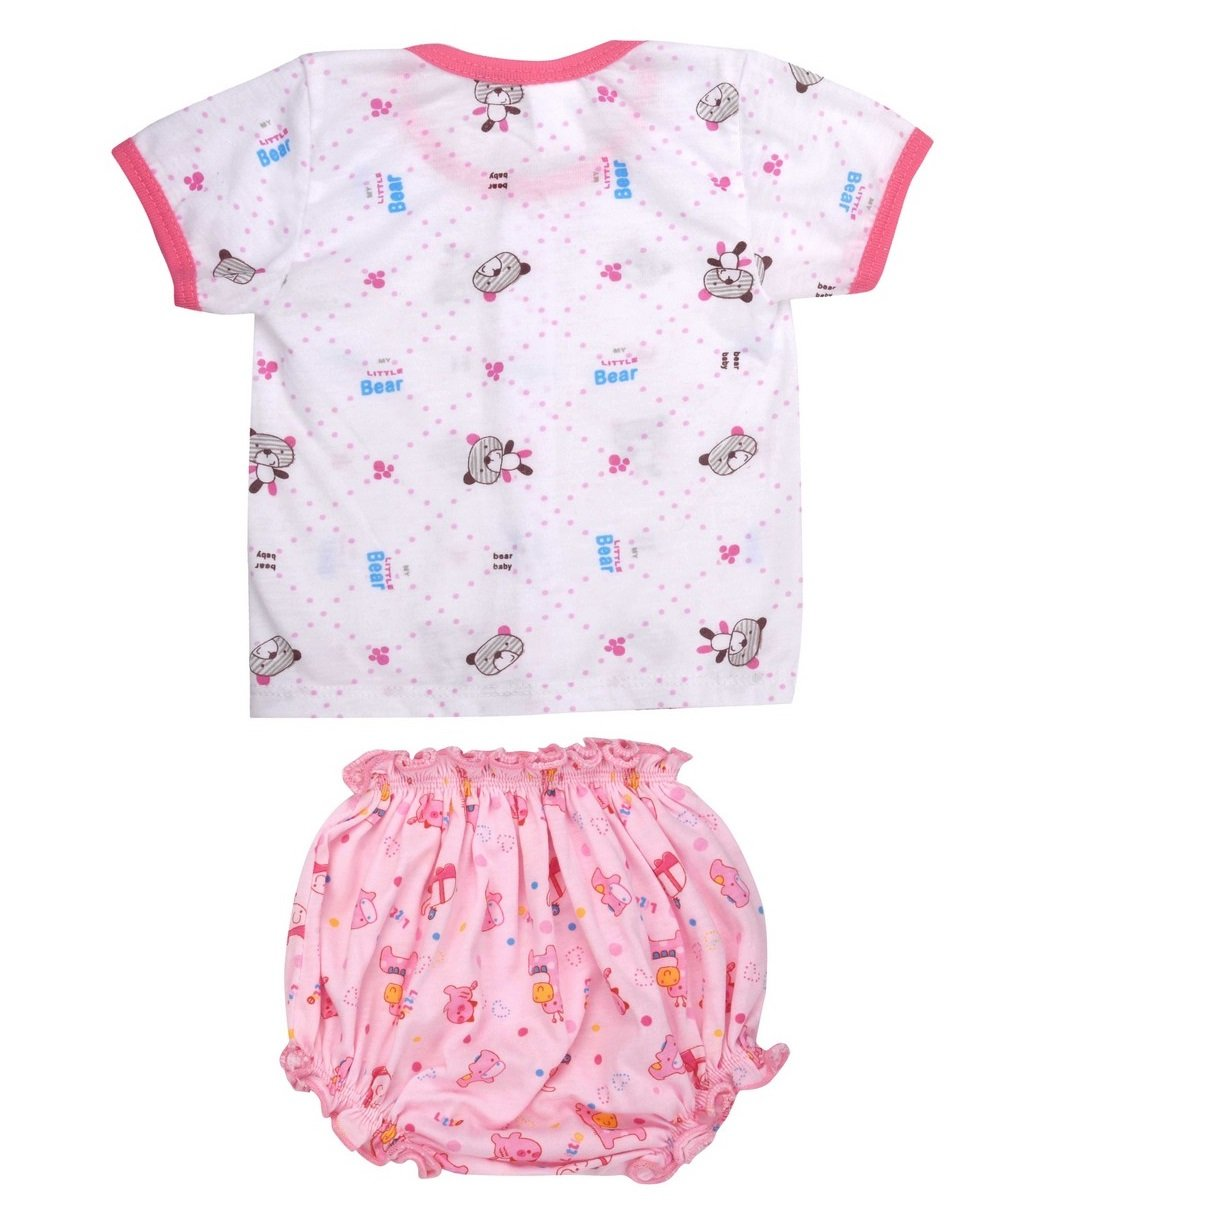 3d1e227deaa2 Goodstart Multicolored Cotton Baby tops with bottoms - Set of 2 ...